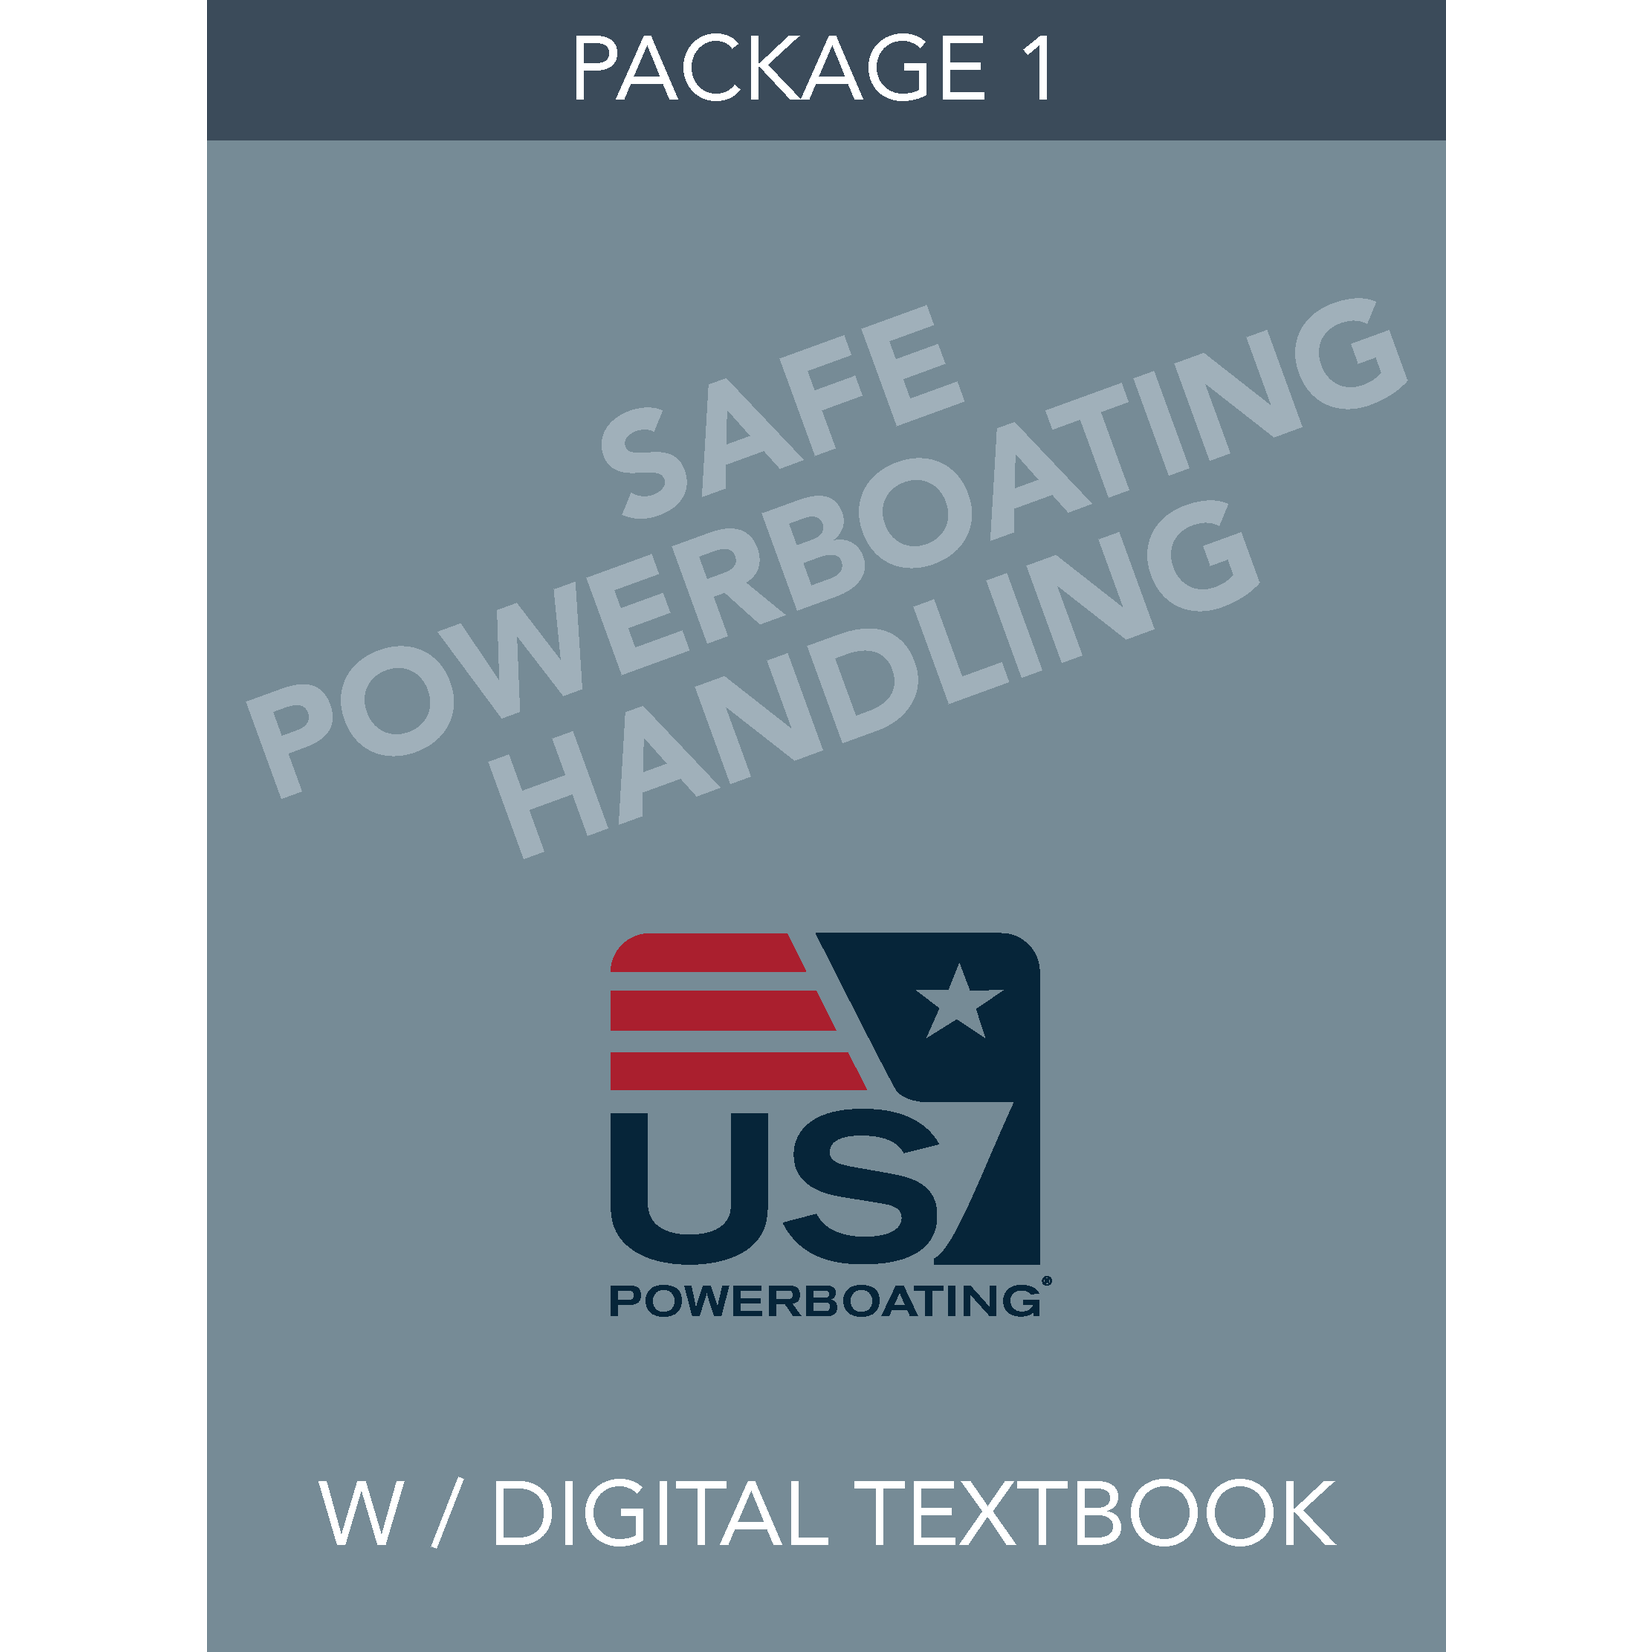 Safe Powerboating Package 1- with Digital Textbook